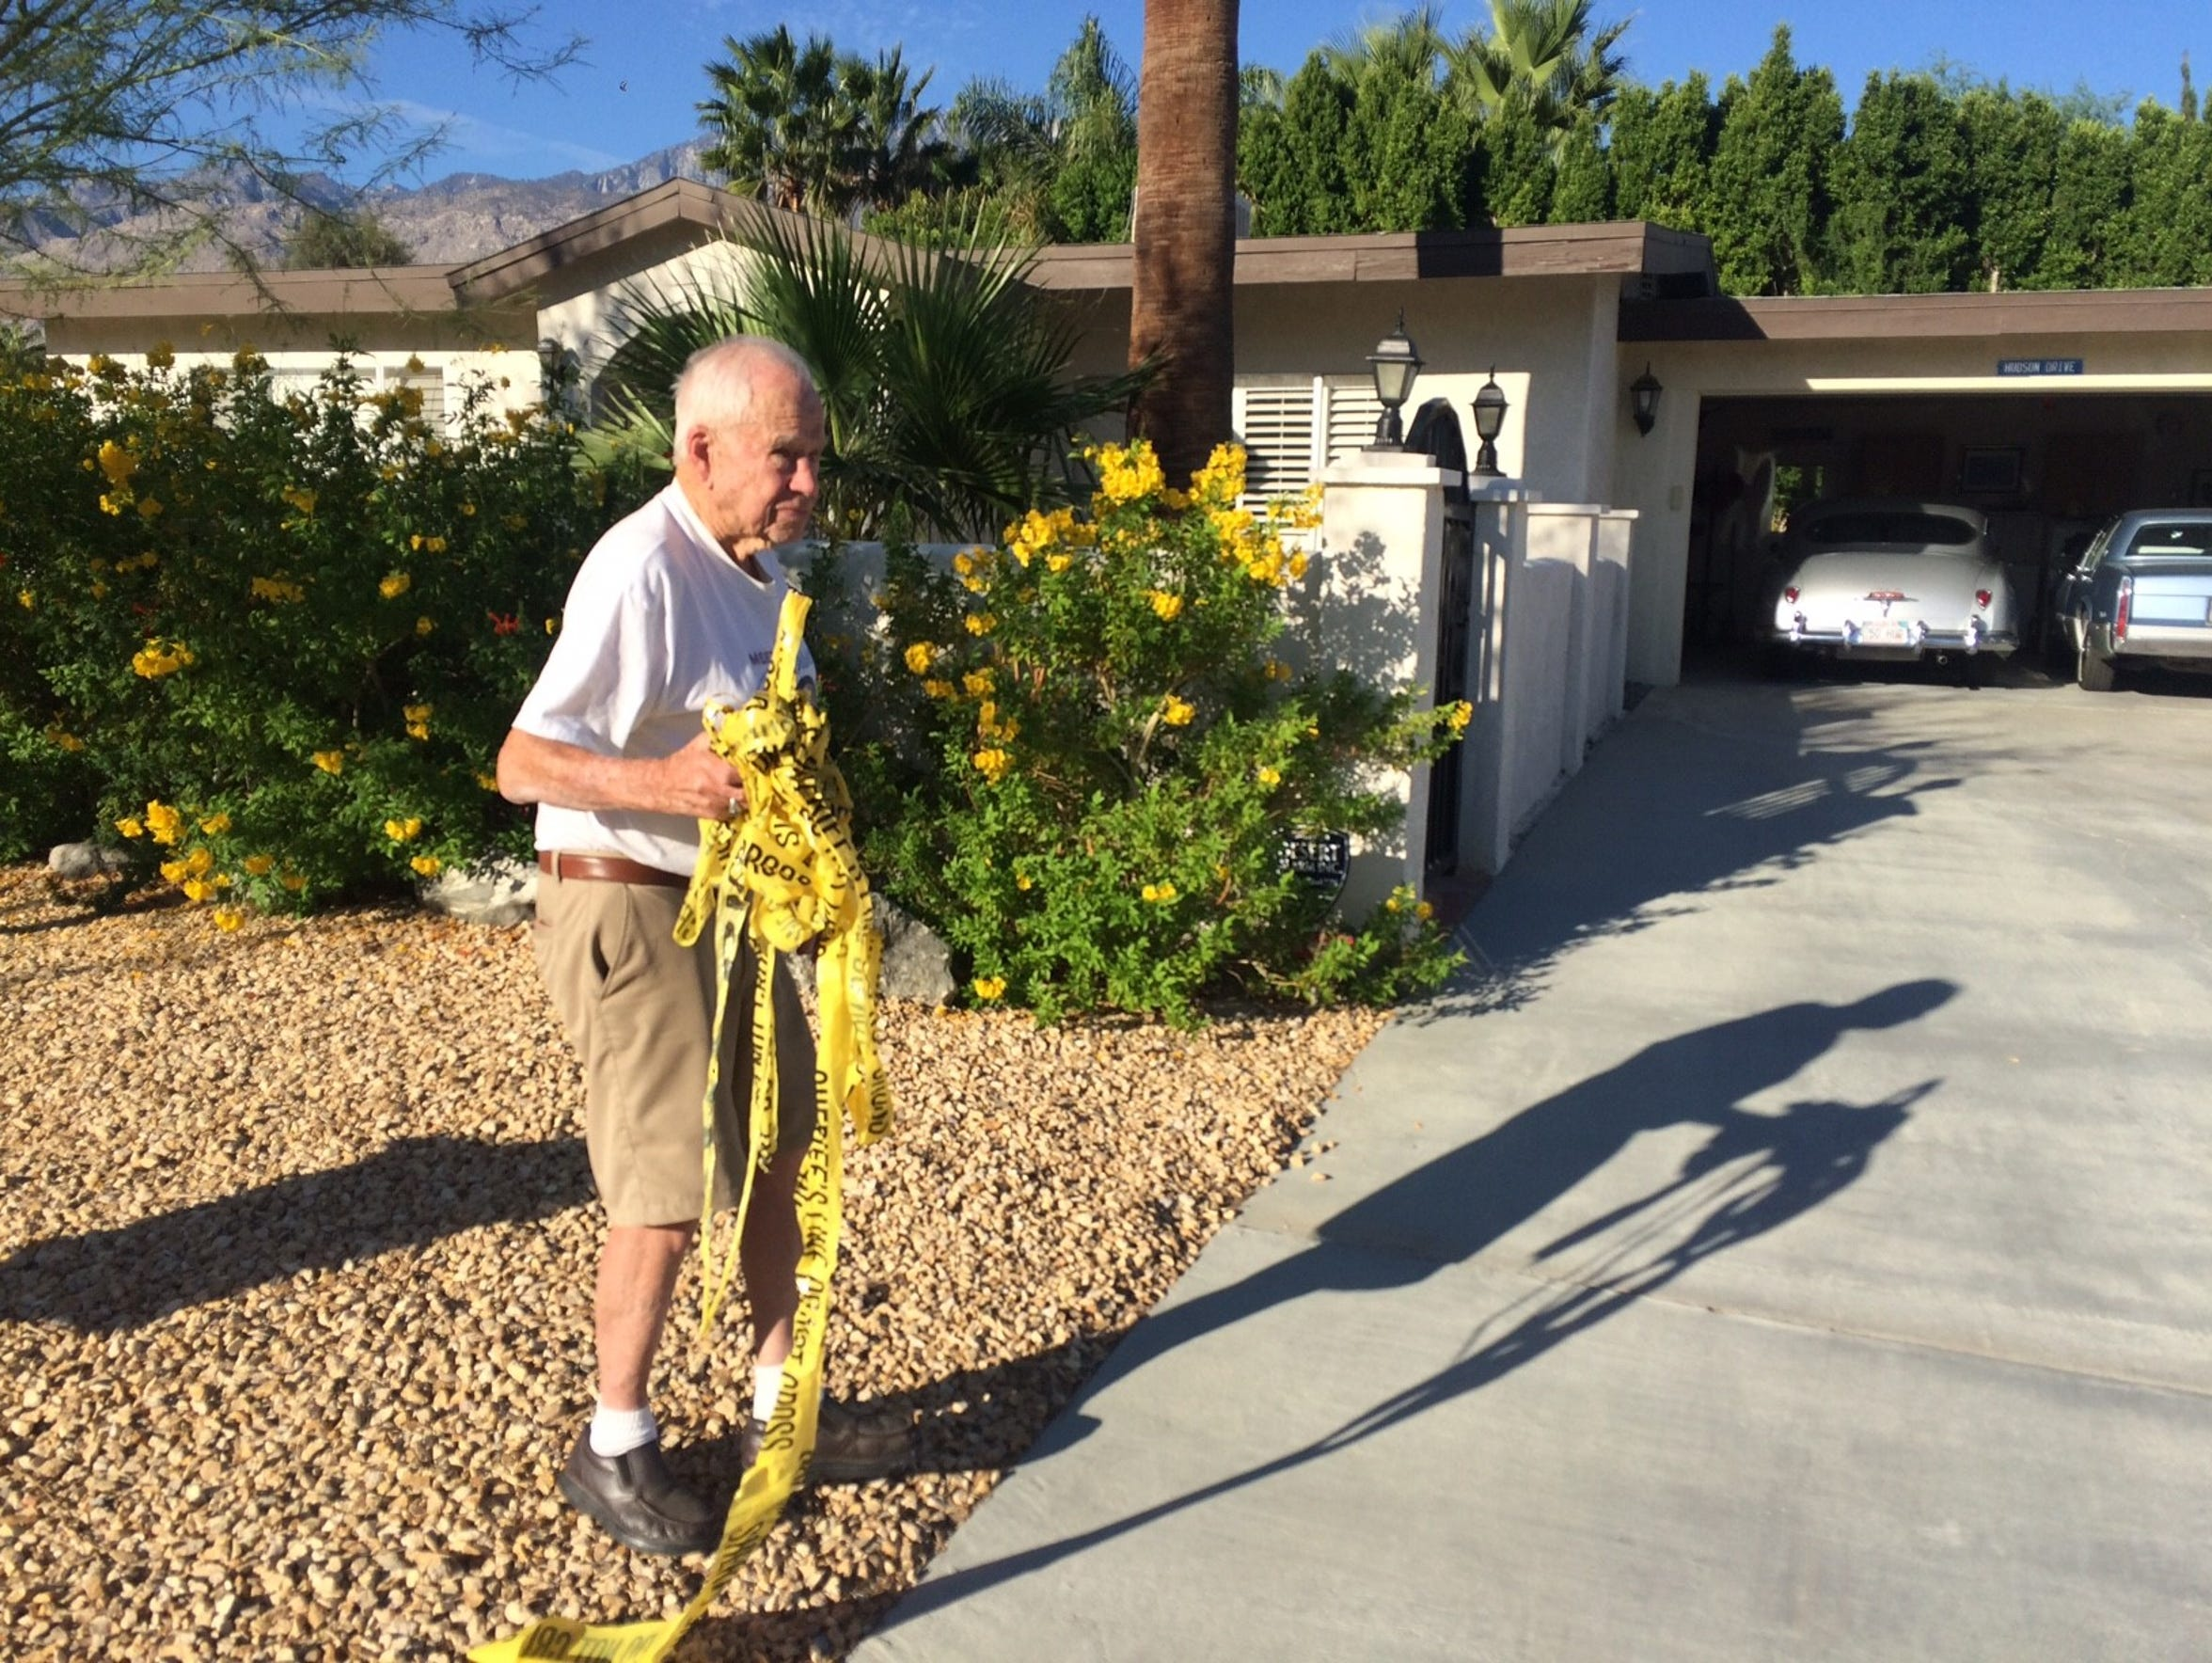 Fred Elg, 93, picks up handfuls of police tape left